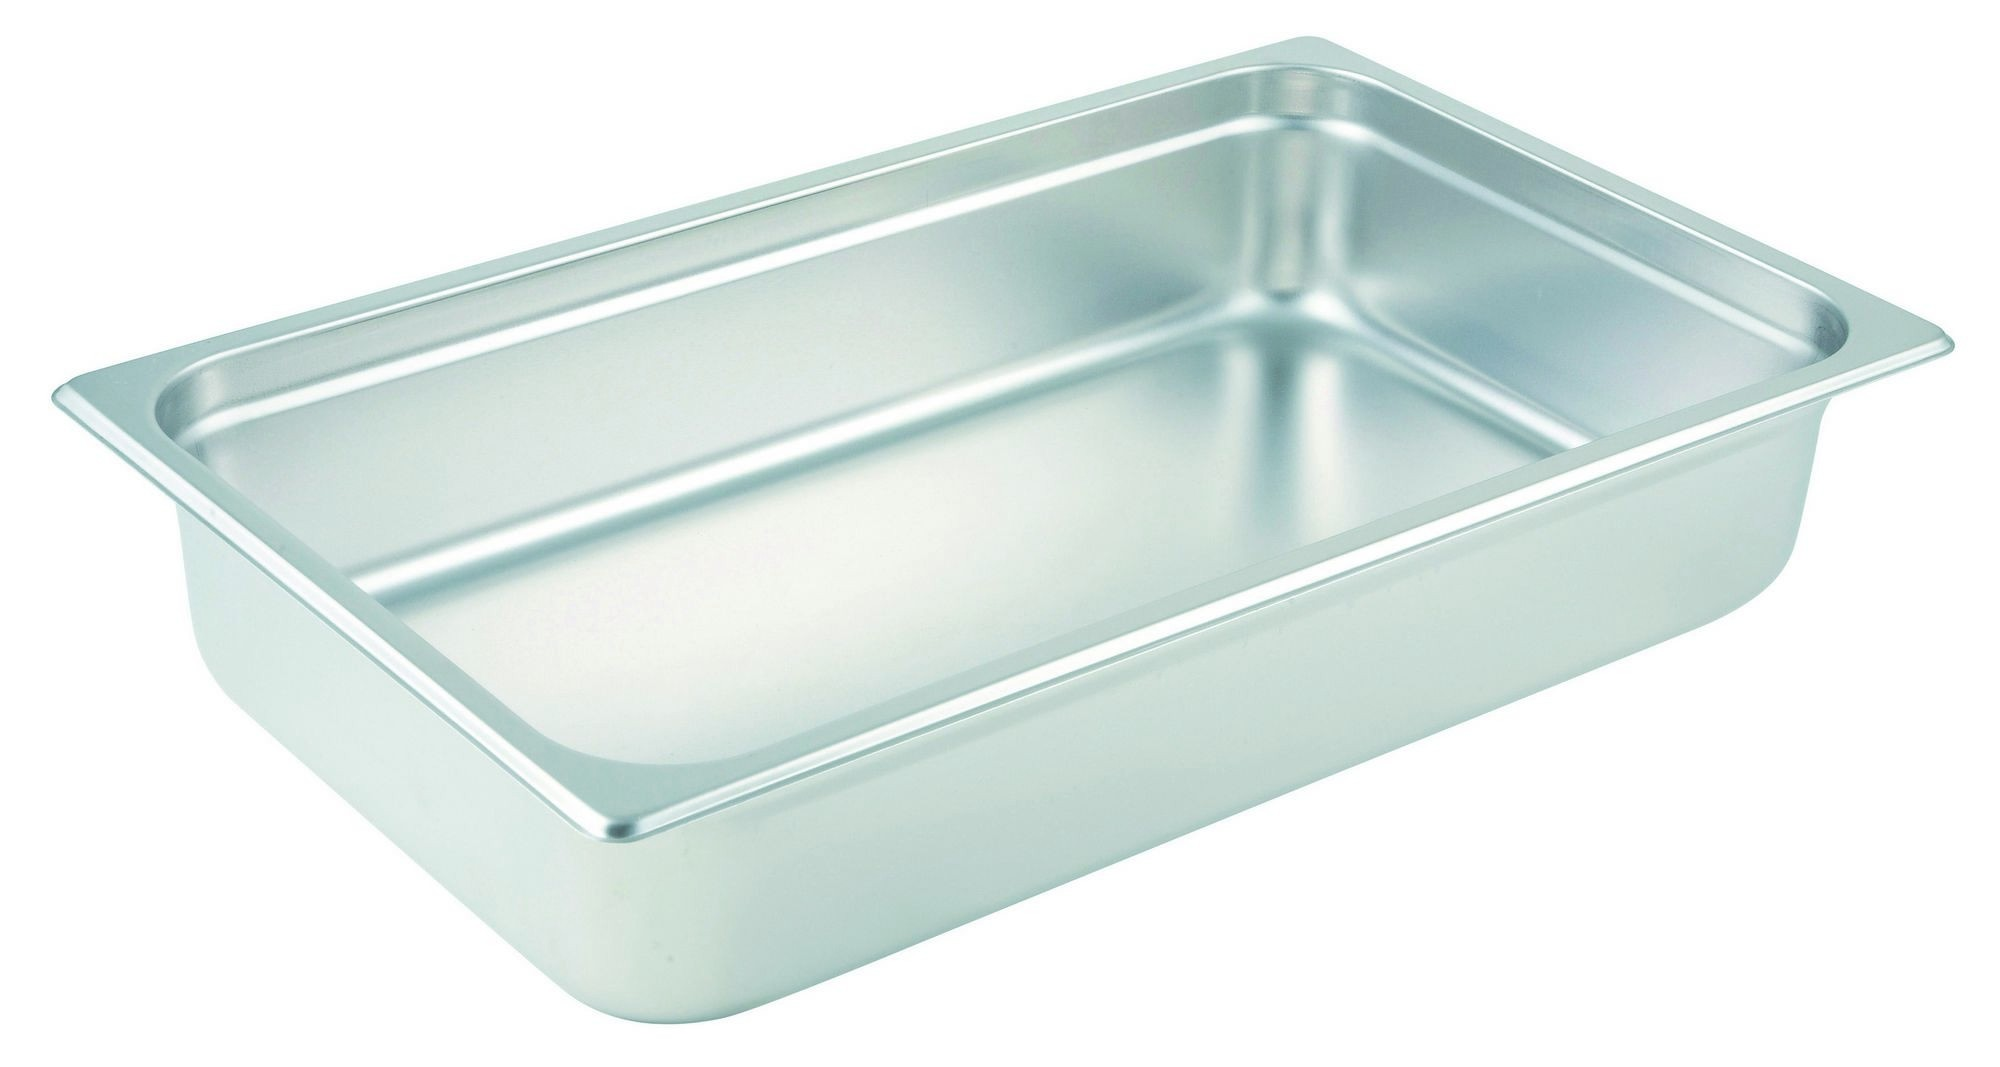 "Winco spjp-104 Full Size Anti-Jam 23 Gauge Steam Table Pan 4"" Deep"